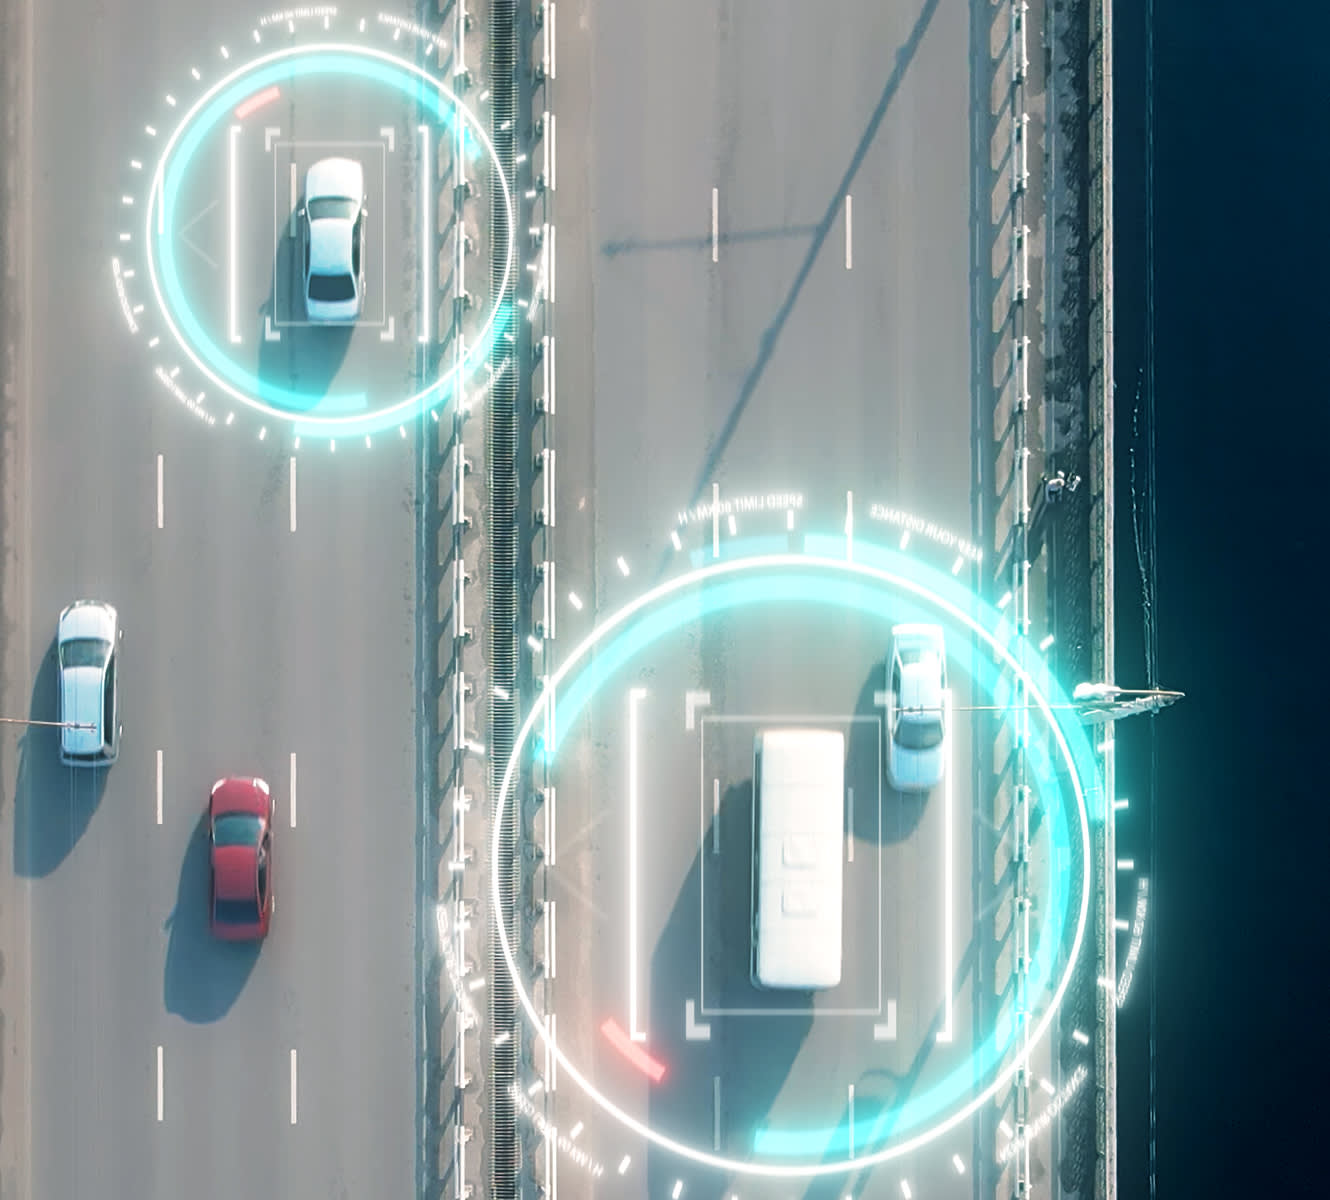 cars targeted data - edited